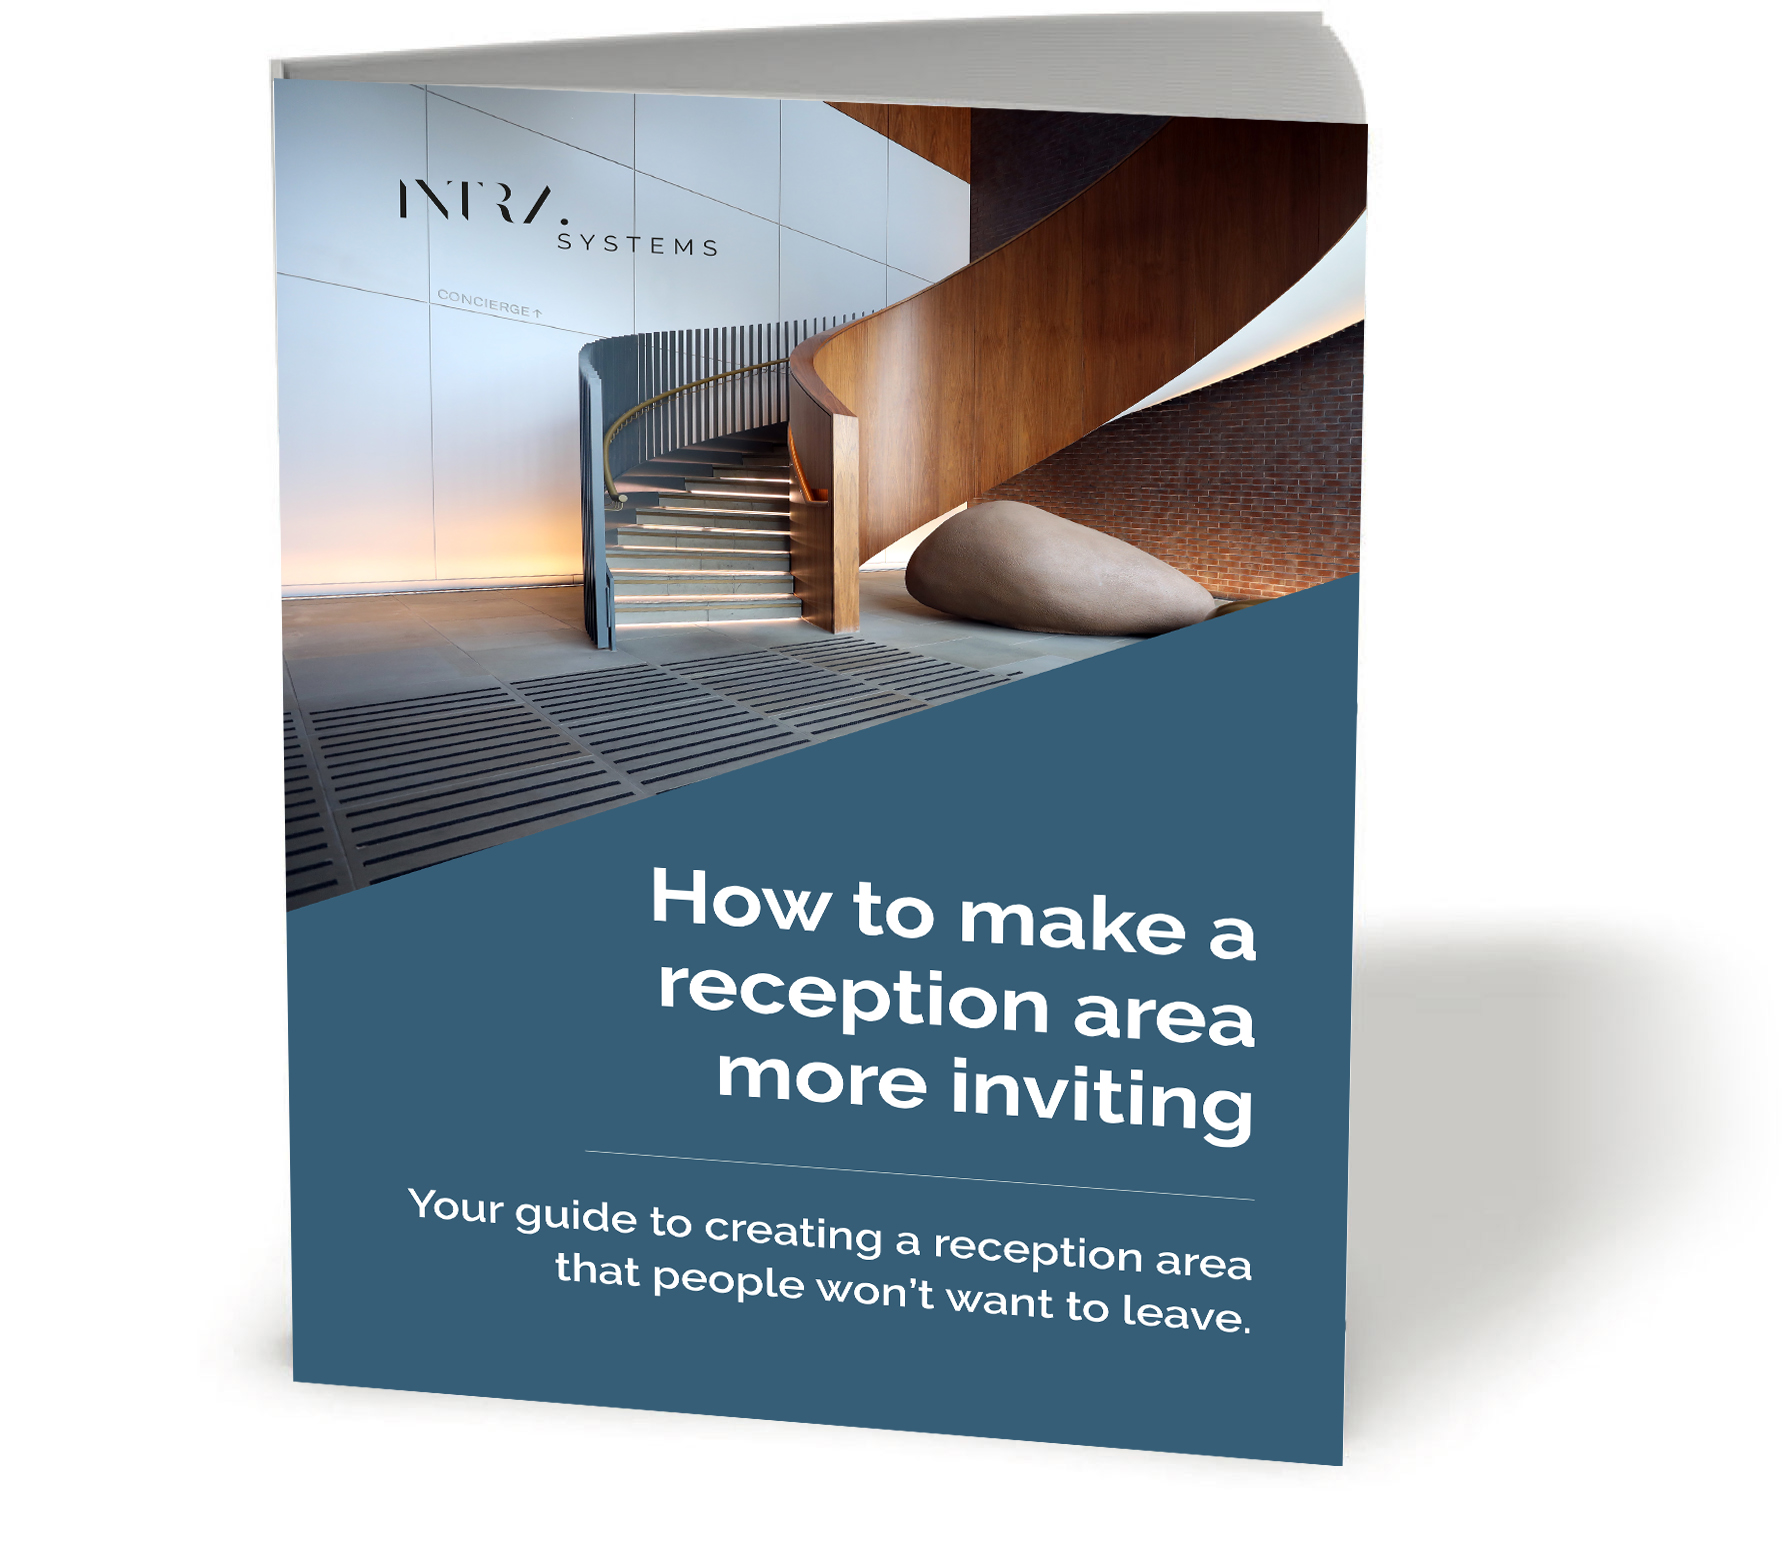 How to make a reception more inviting